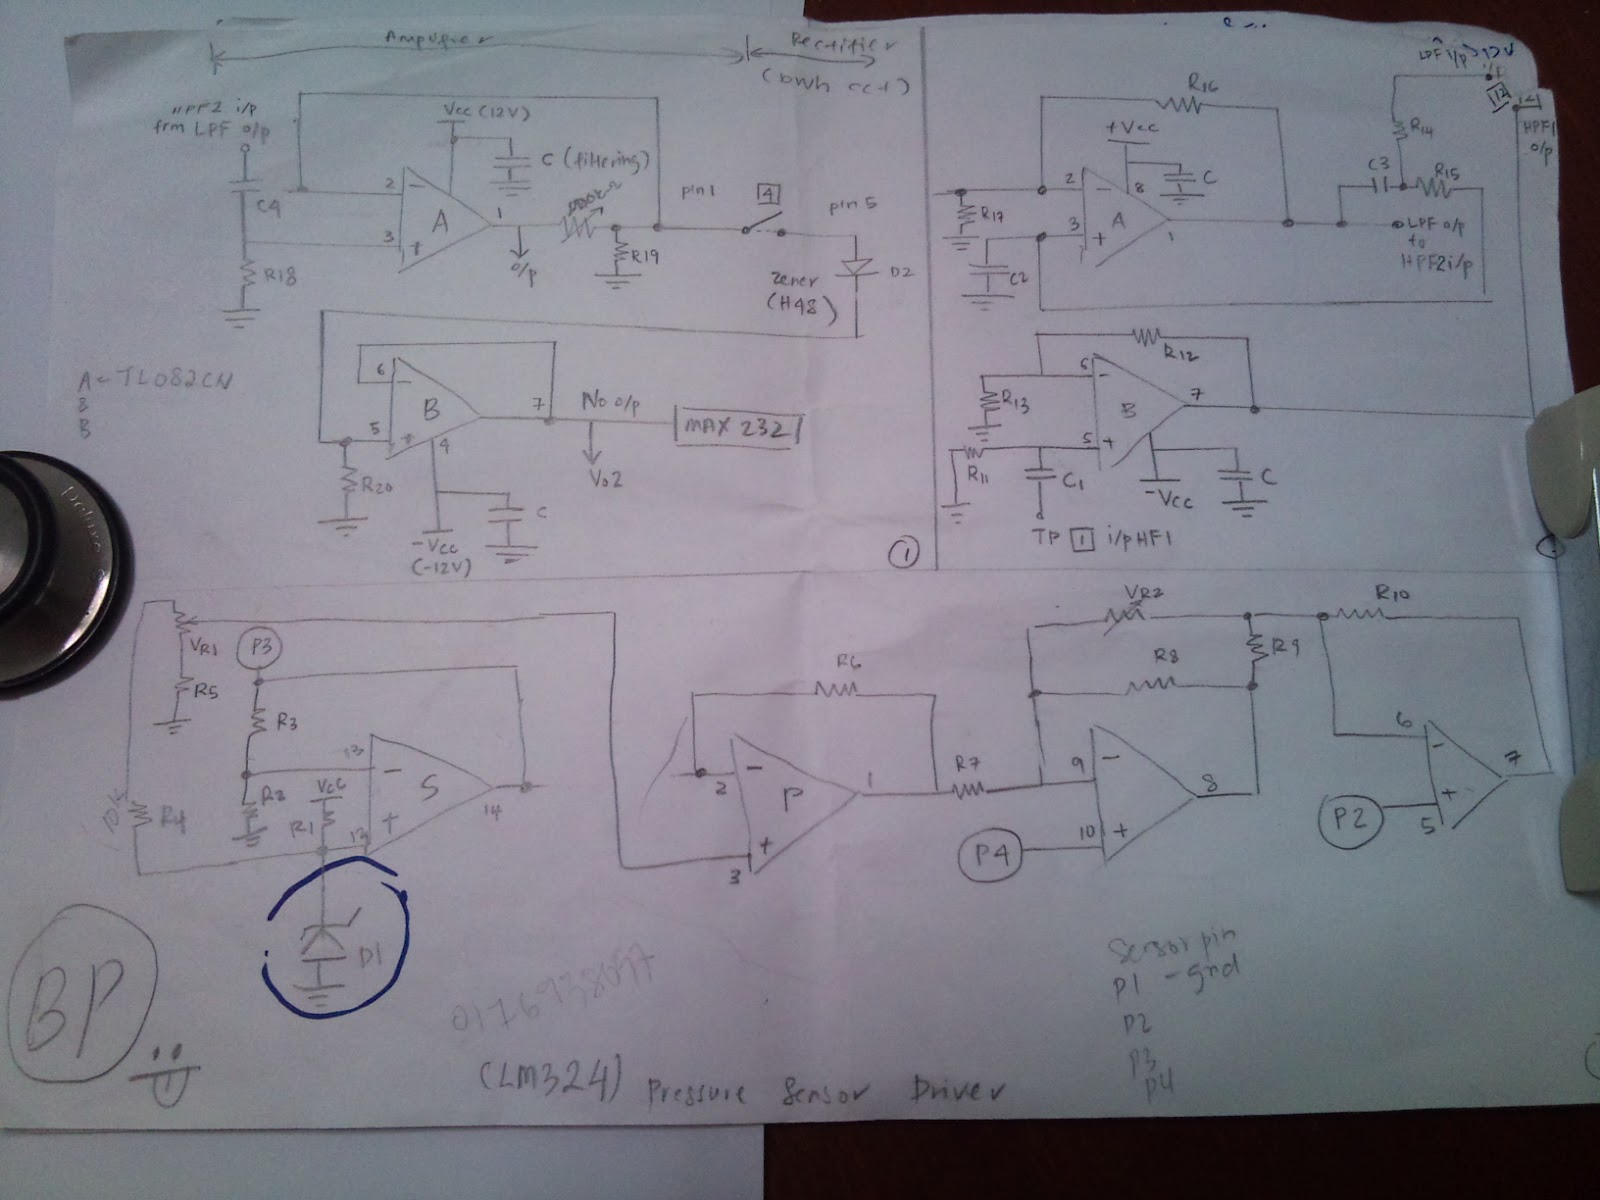 Hand Drawn Circuit Board Schematics Bing Images